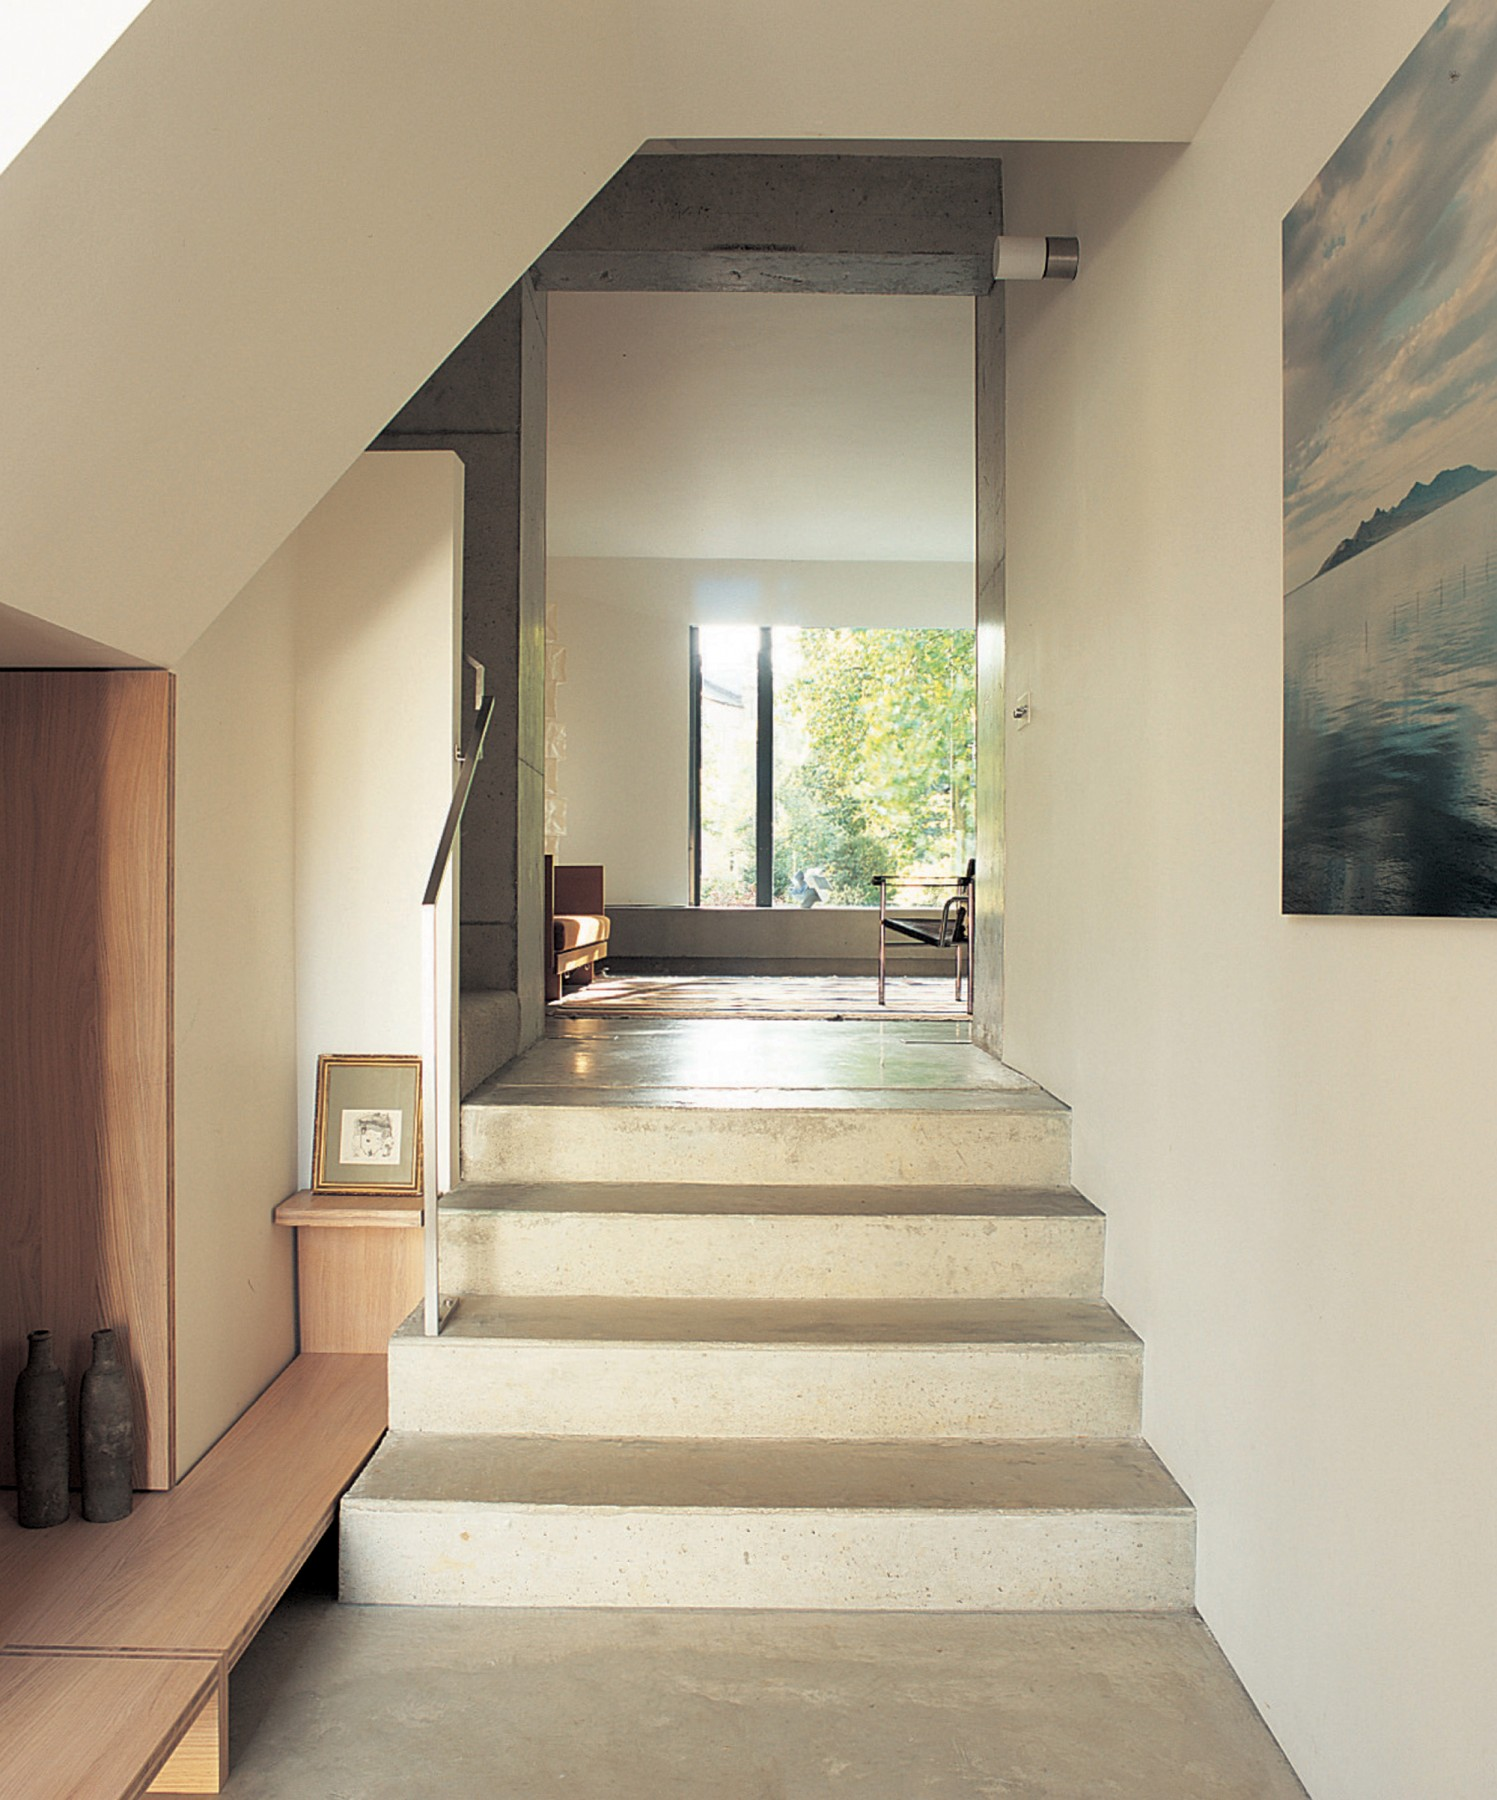 Kander-house-Primrose-hill-London-residential-home-contemporary-interior-Riba-award-victorian-Jamie-Fobert-Architects-6